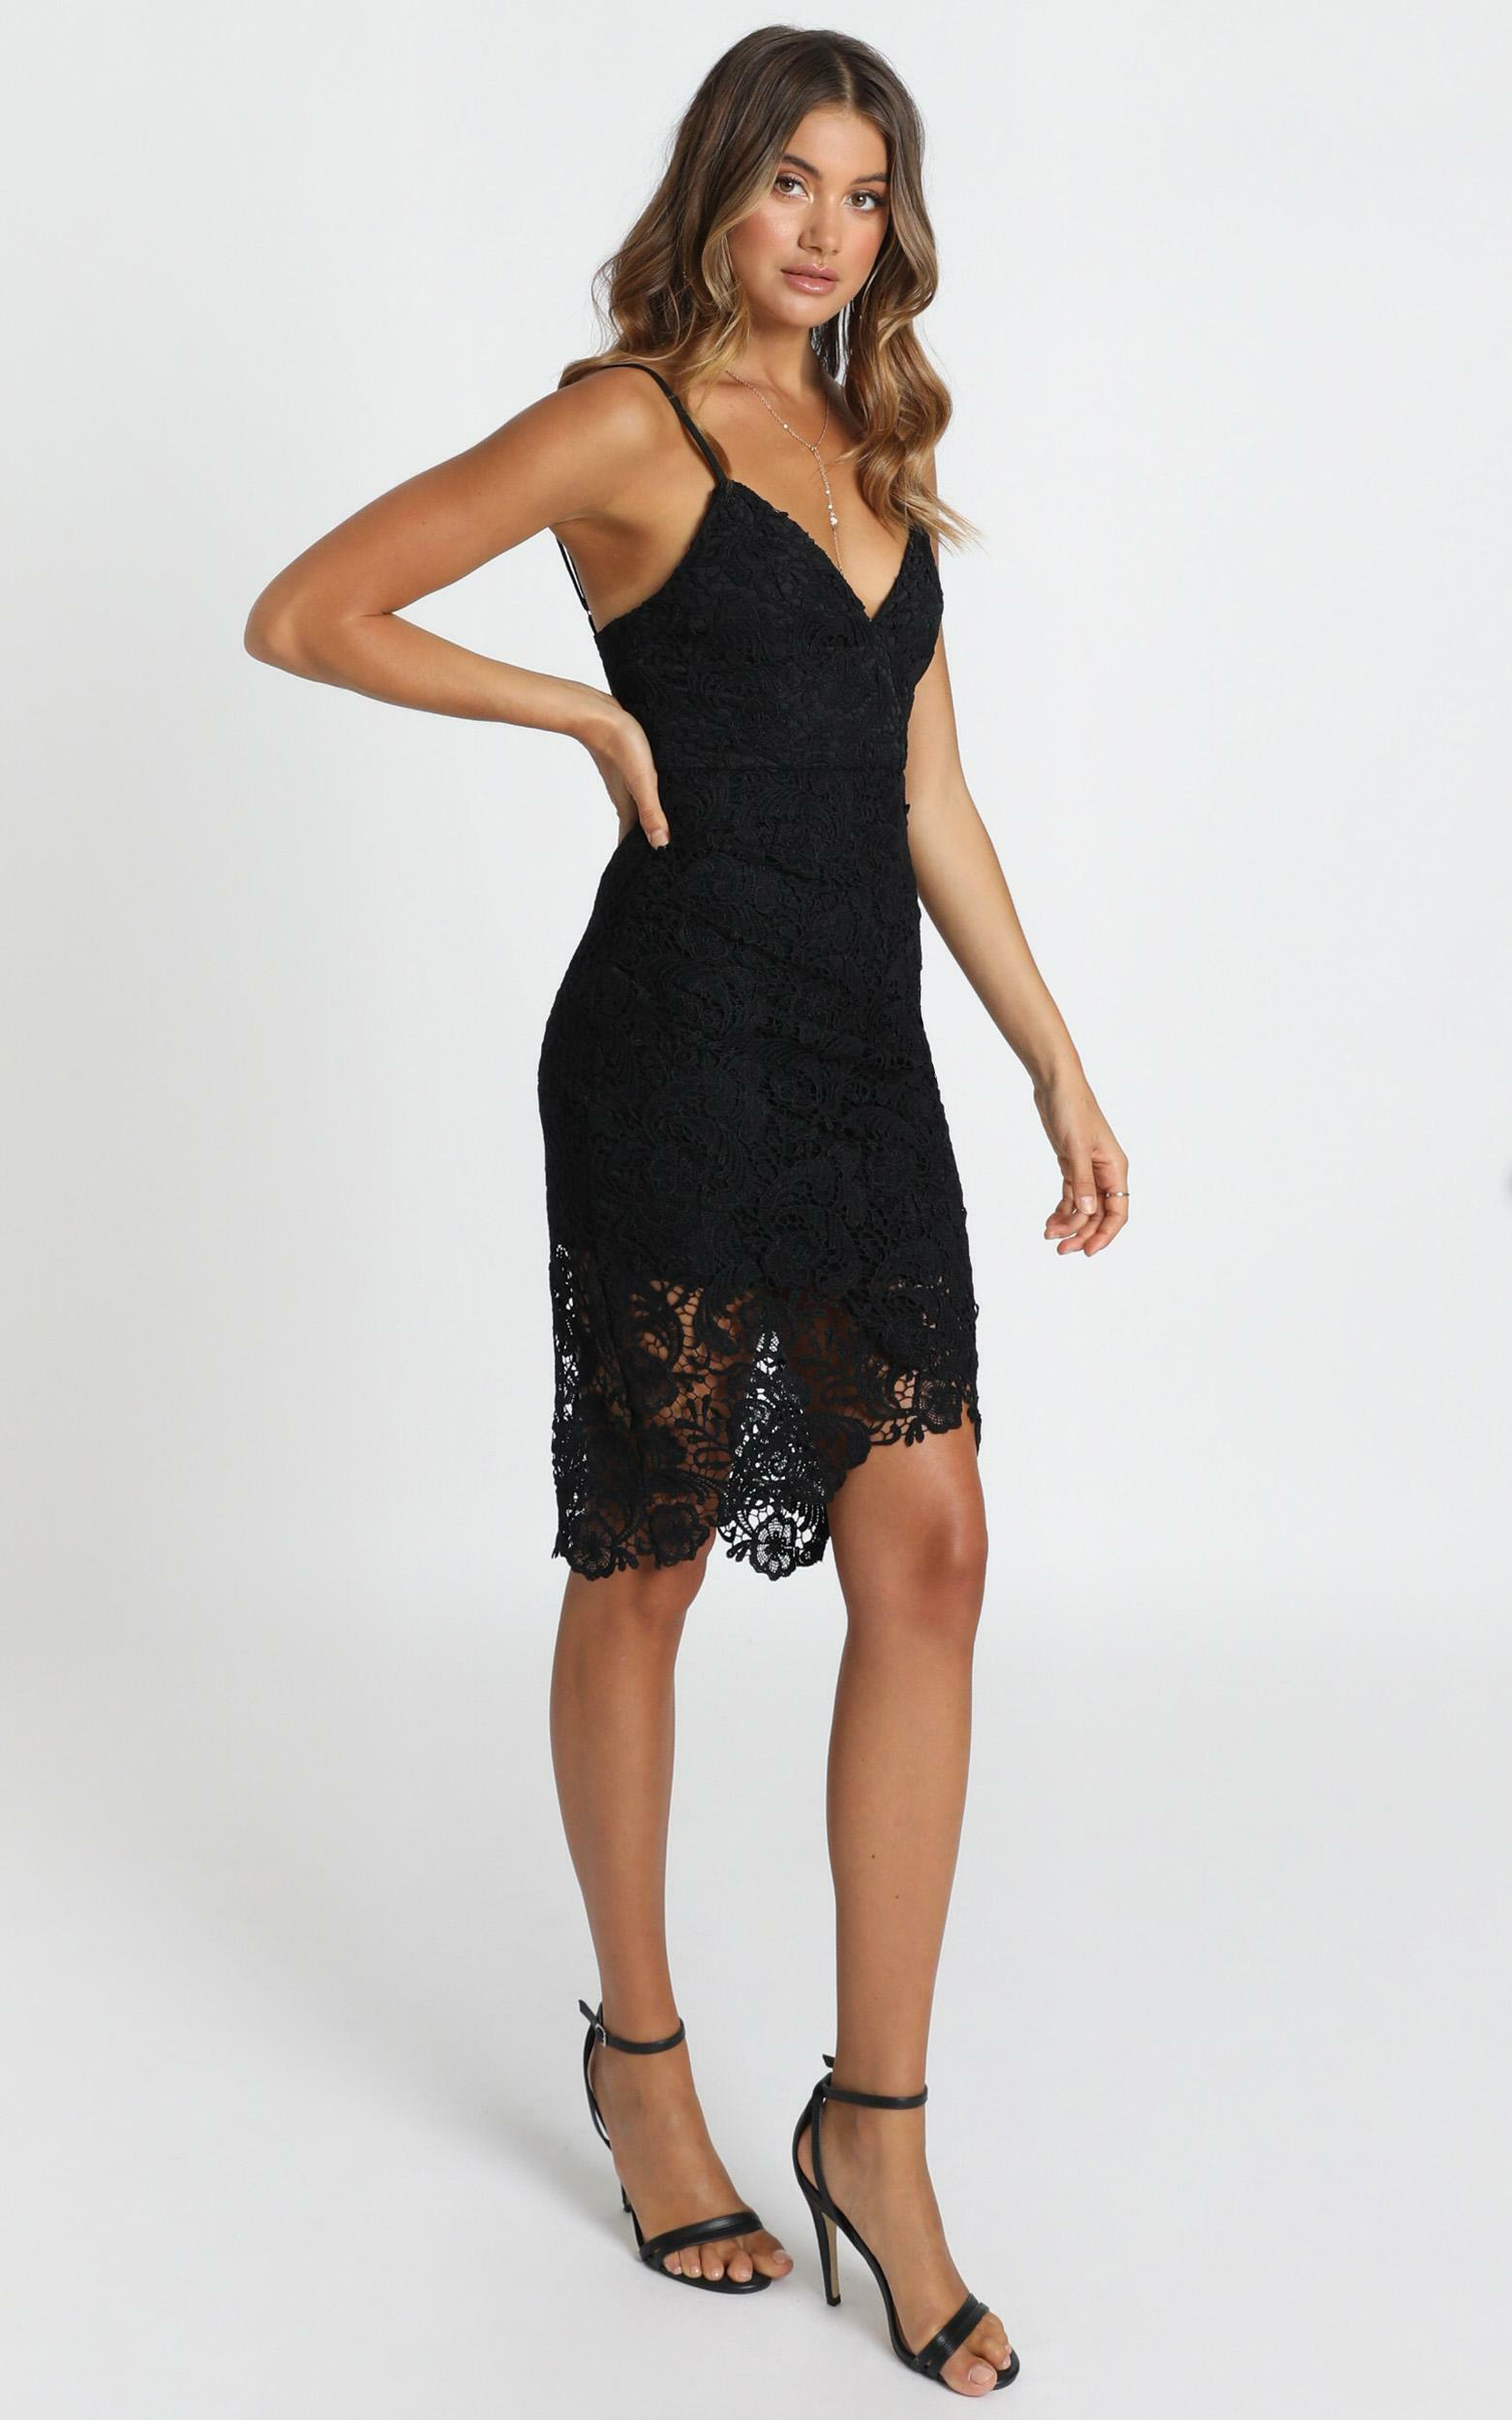 Typical Lover Dress In black lace - 20 (XXXXL), Black, hi-res image number null